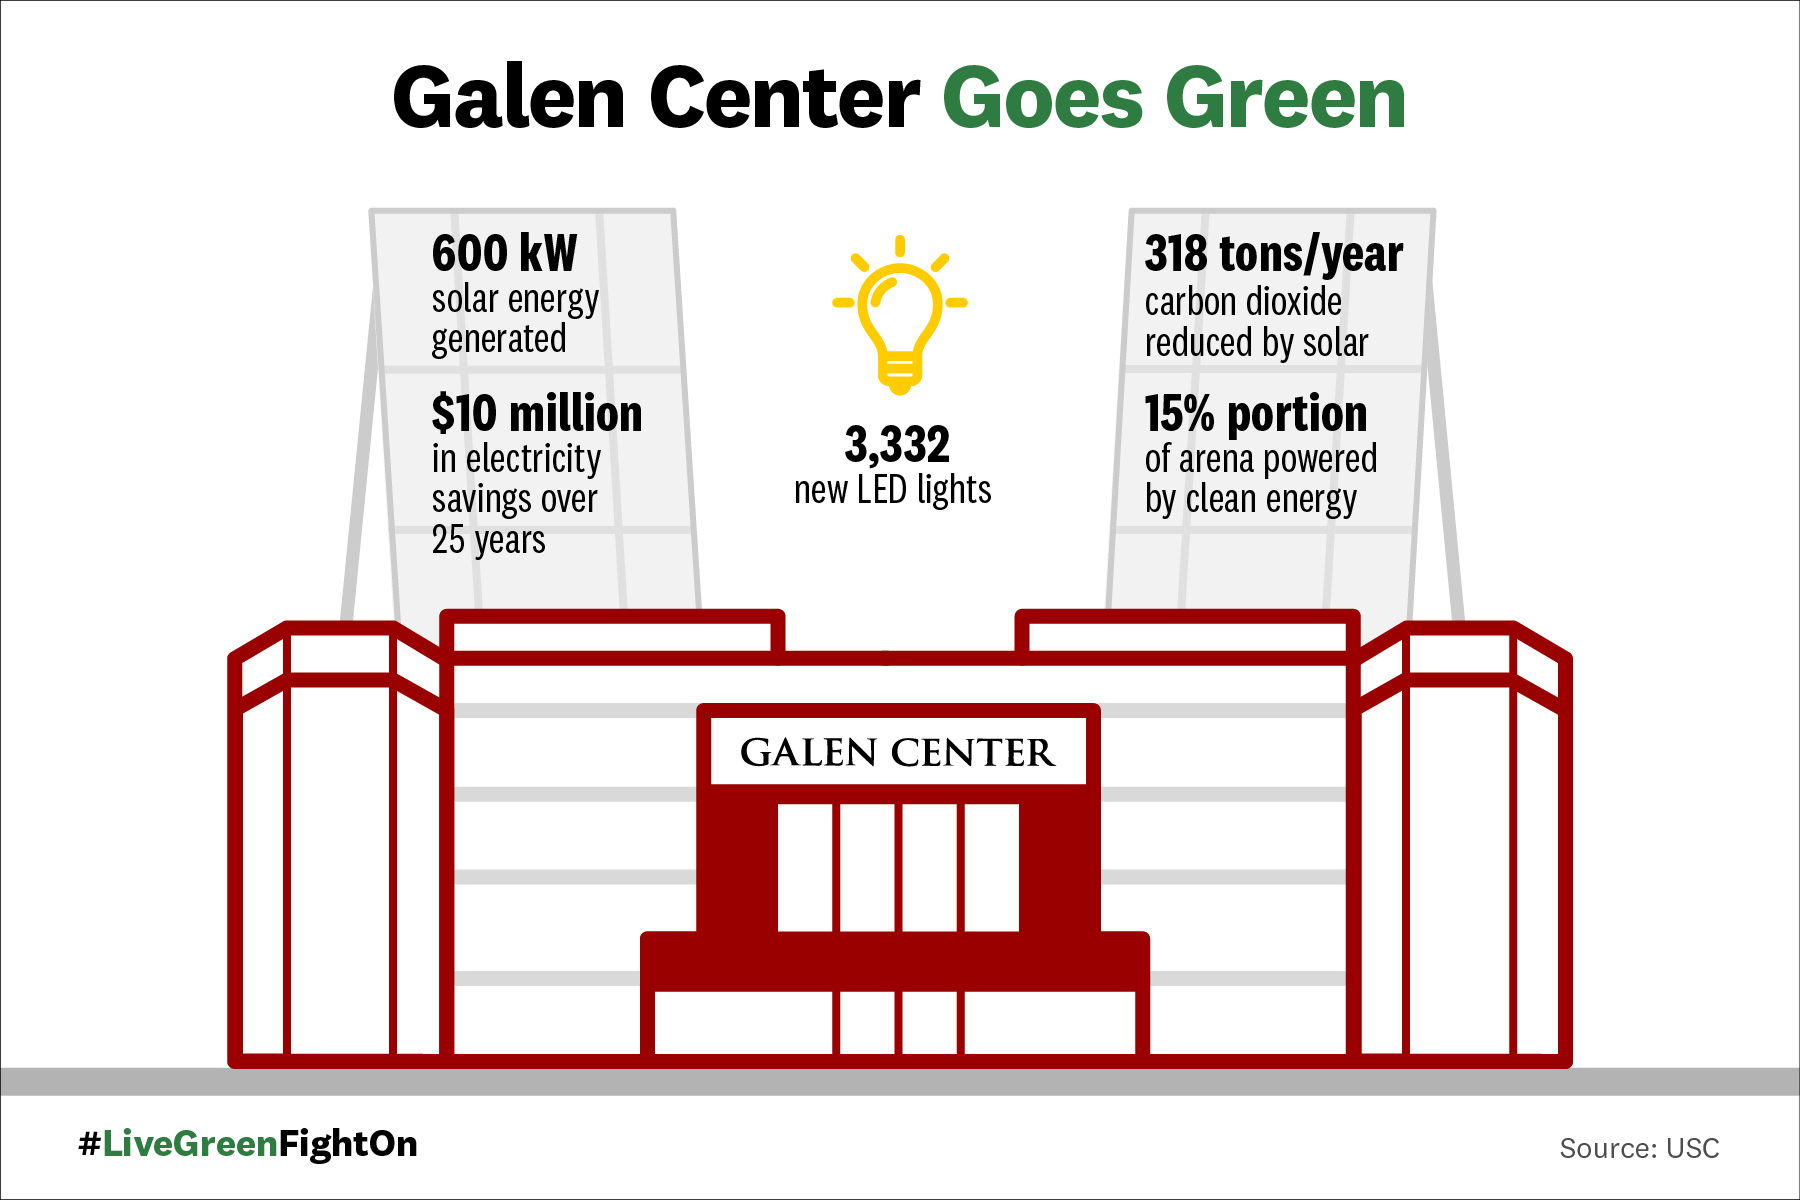 Galen Center Goes Green graphic